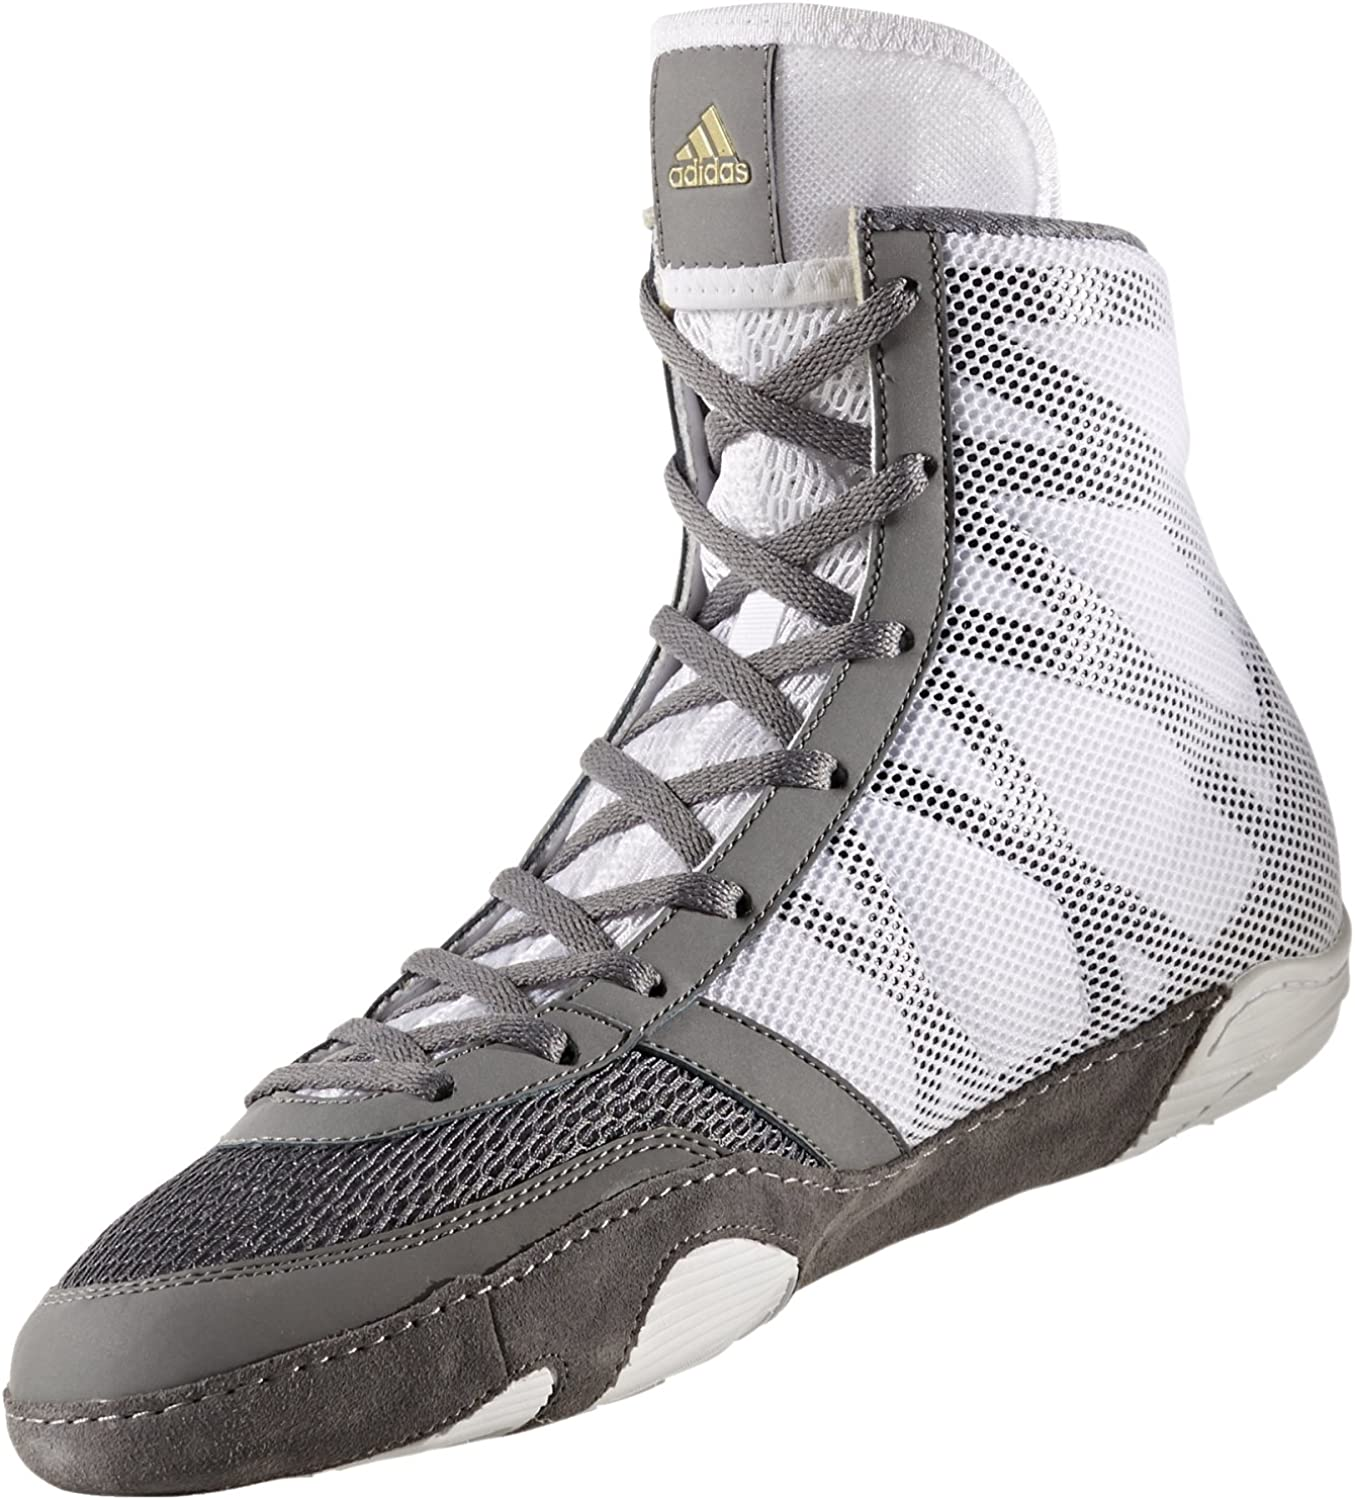 Adidas Pretereo III Men's Wrestling shoes, Grey gold White, Size 9